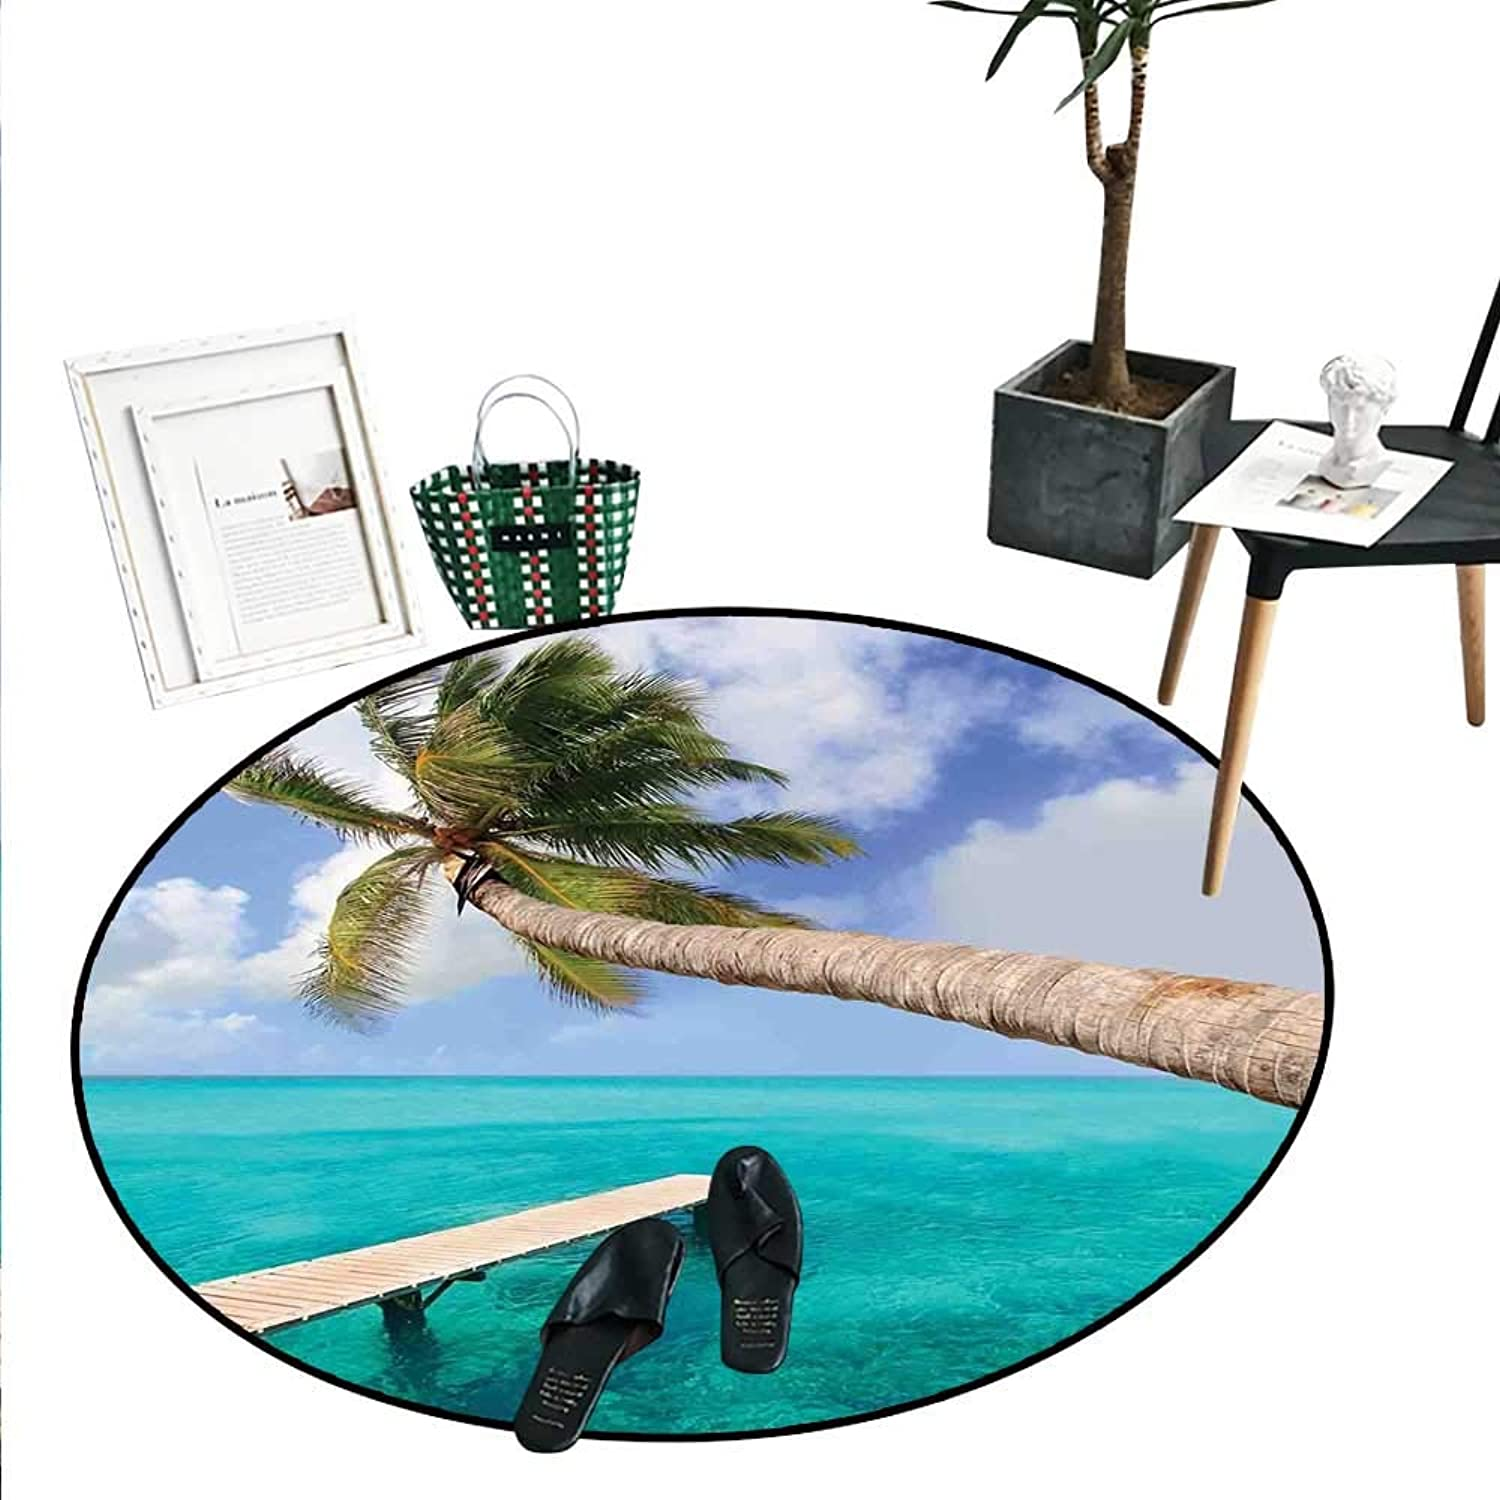 Beach Dining Room Home Bedroom Carpet Floor Mat Palm Tree Bend Over Tropical Beach Clear Ocean Jetty Landmark Picture Print Soft Area Rugs (4'2  Diameter) Aqua bluee Green